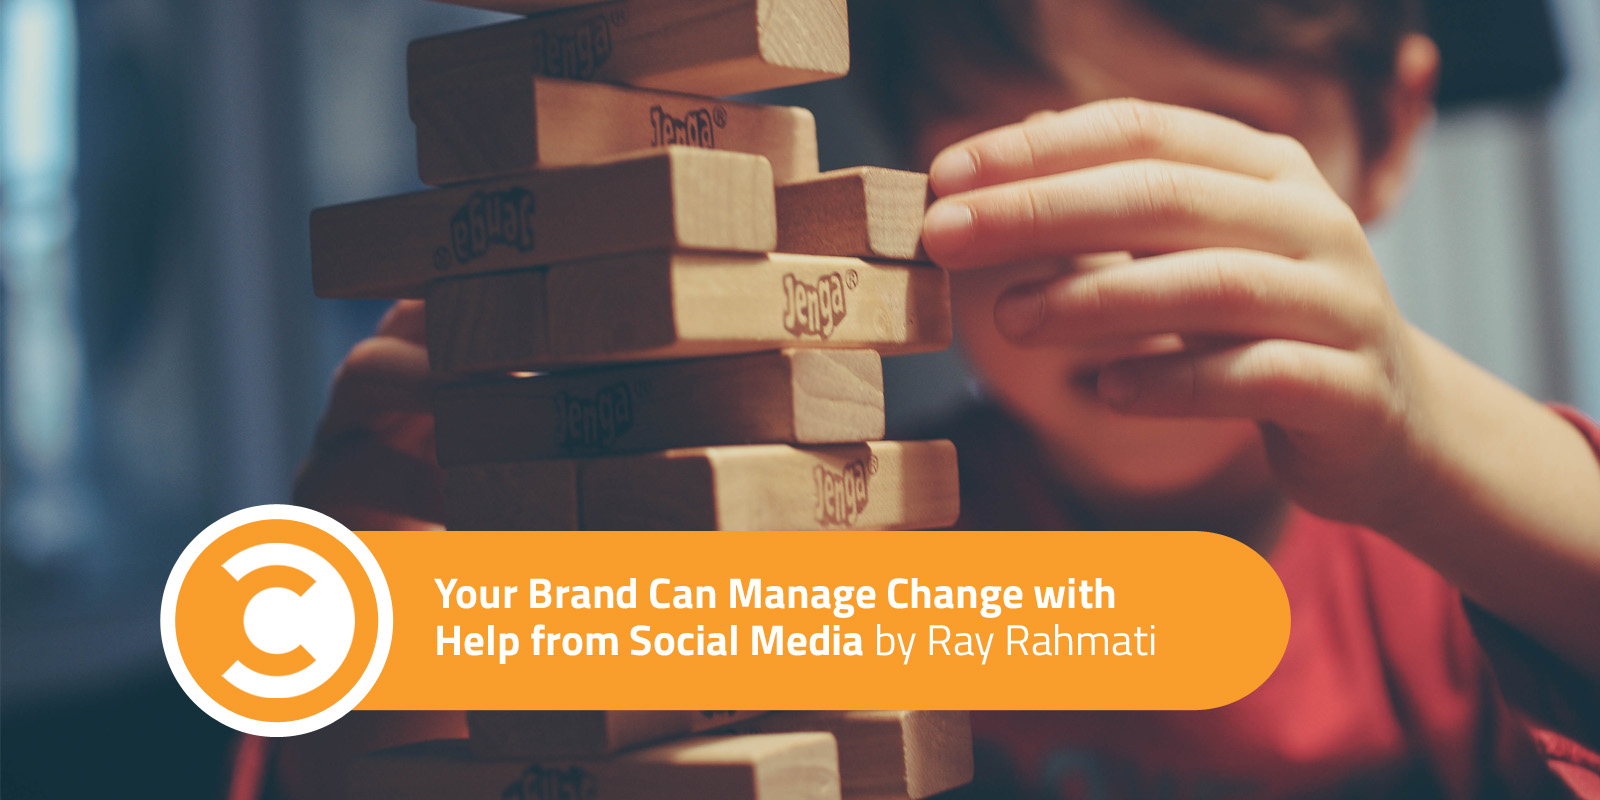 Your Brand Can Manage Change with Help from Social Media